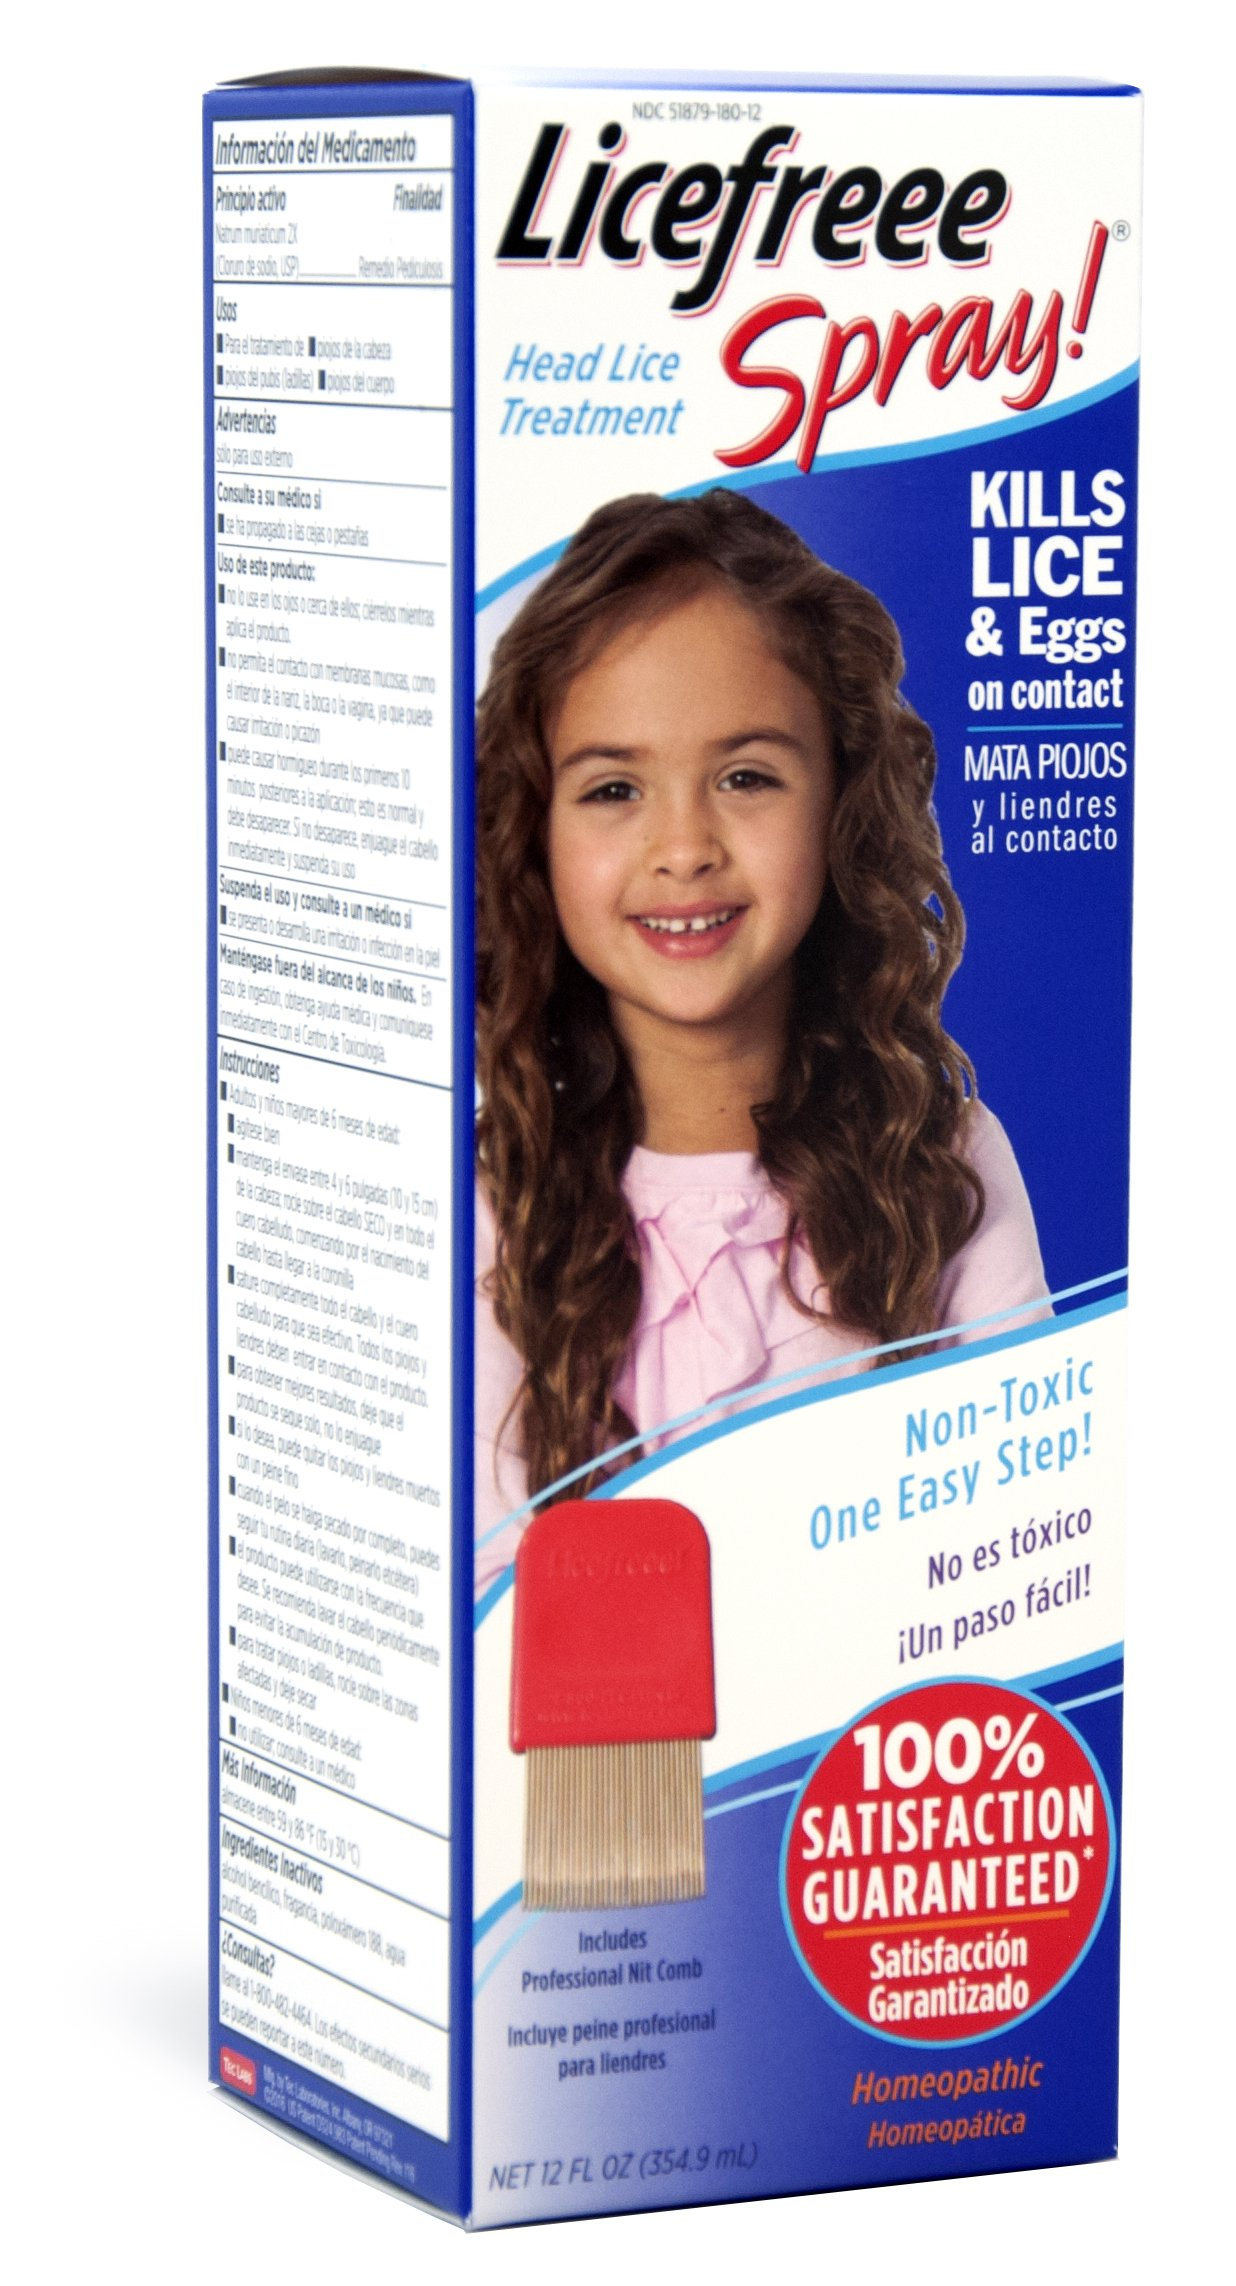 Licefreee Spray Large Family Size Head Lice Treatment (Kills Lice and Eggs on Contact) Includes Professional Metal Nit Comb, 12 Fluid Ounce (4 Pack) by Tec Labs